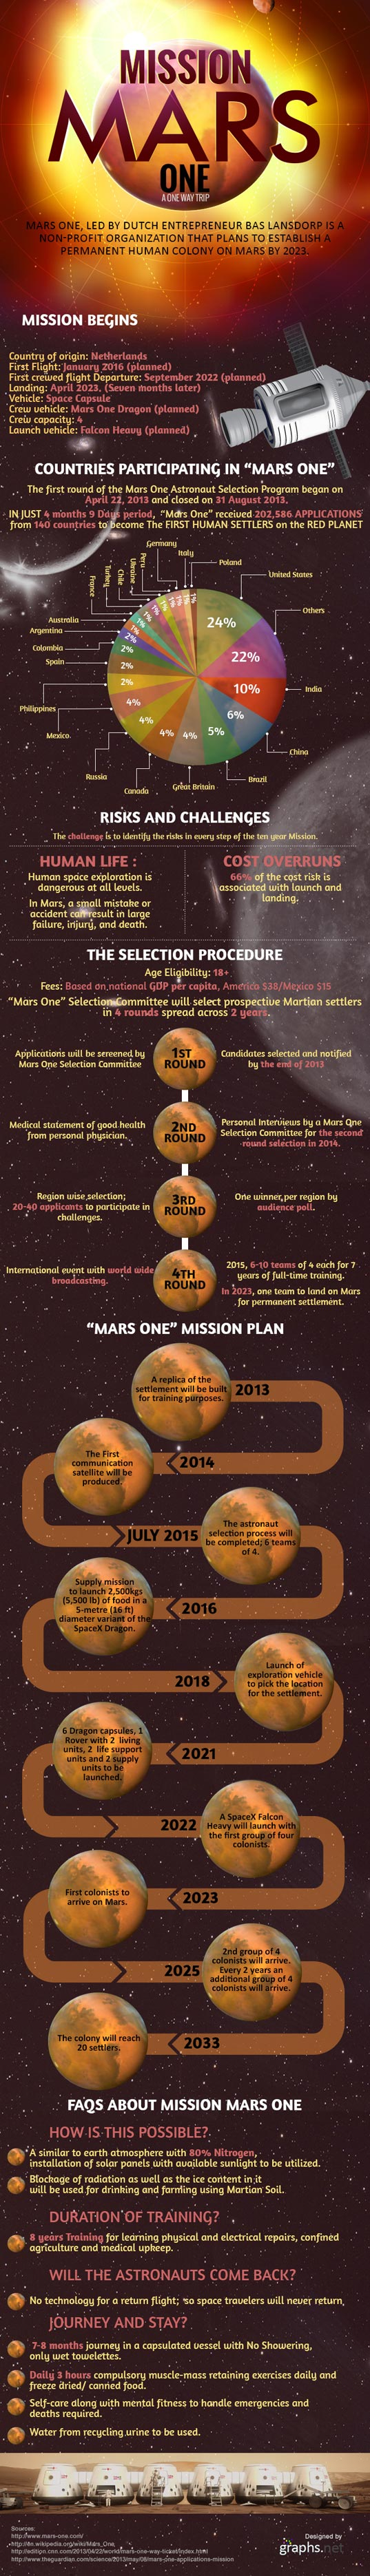 mission mars one, infographic, mars infographic, mars one, mars colony, mission to mars, sustainable design, green design, bas lansdorp, space, mars 2023